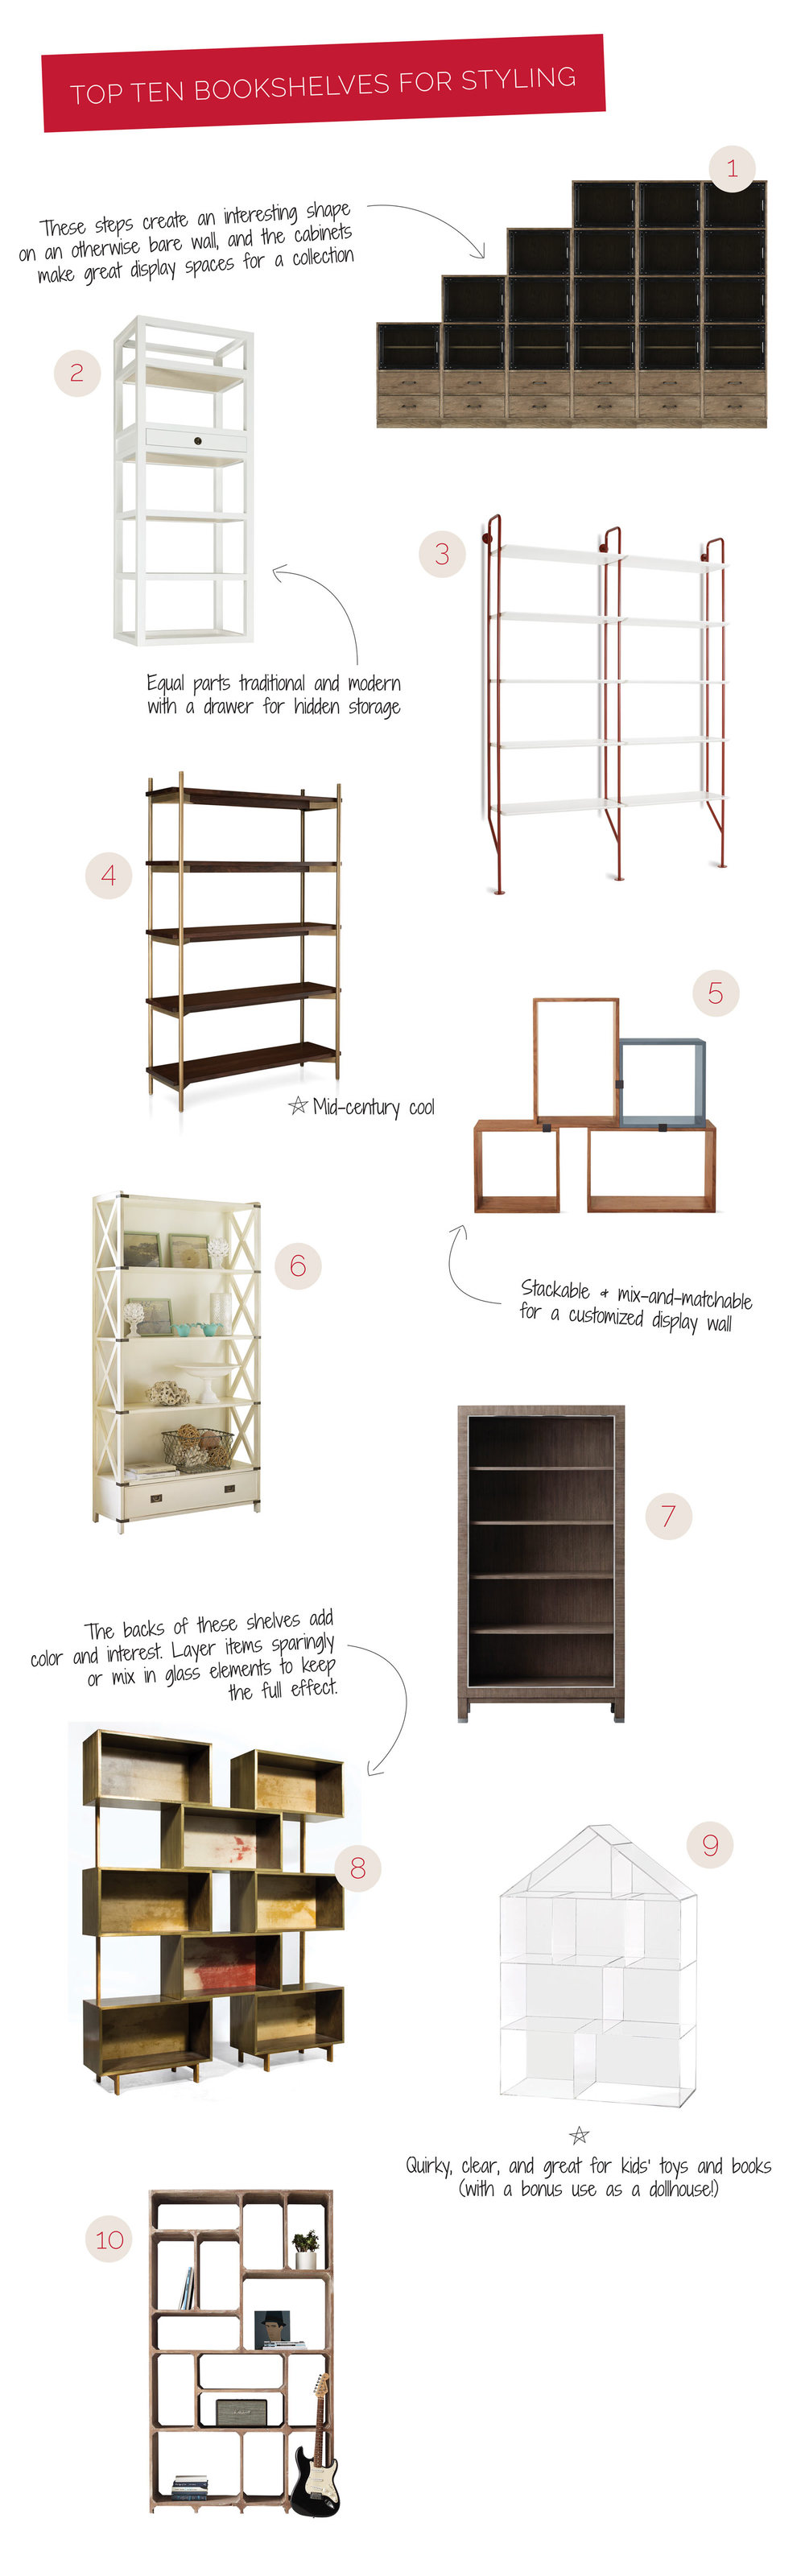 Alexis Givens Interiors | Top Ten Bookshelves for Styling | deardesigndiary.com